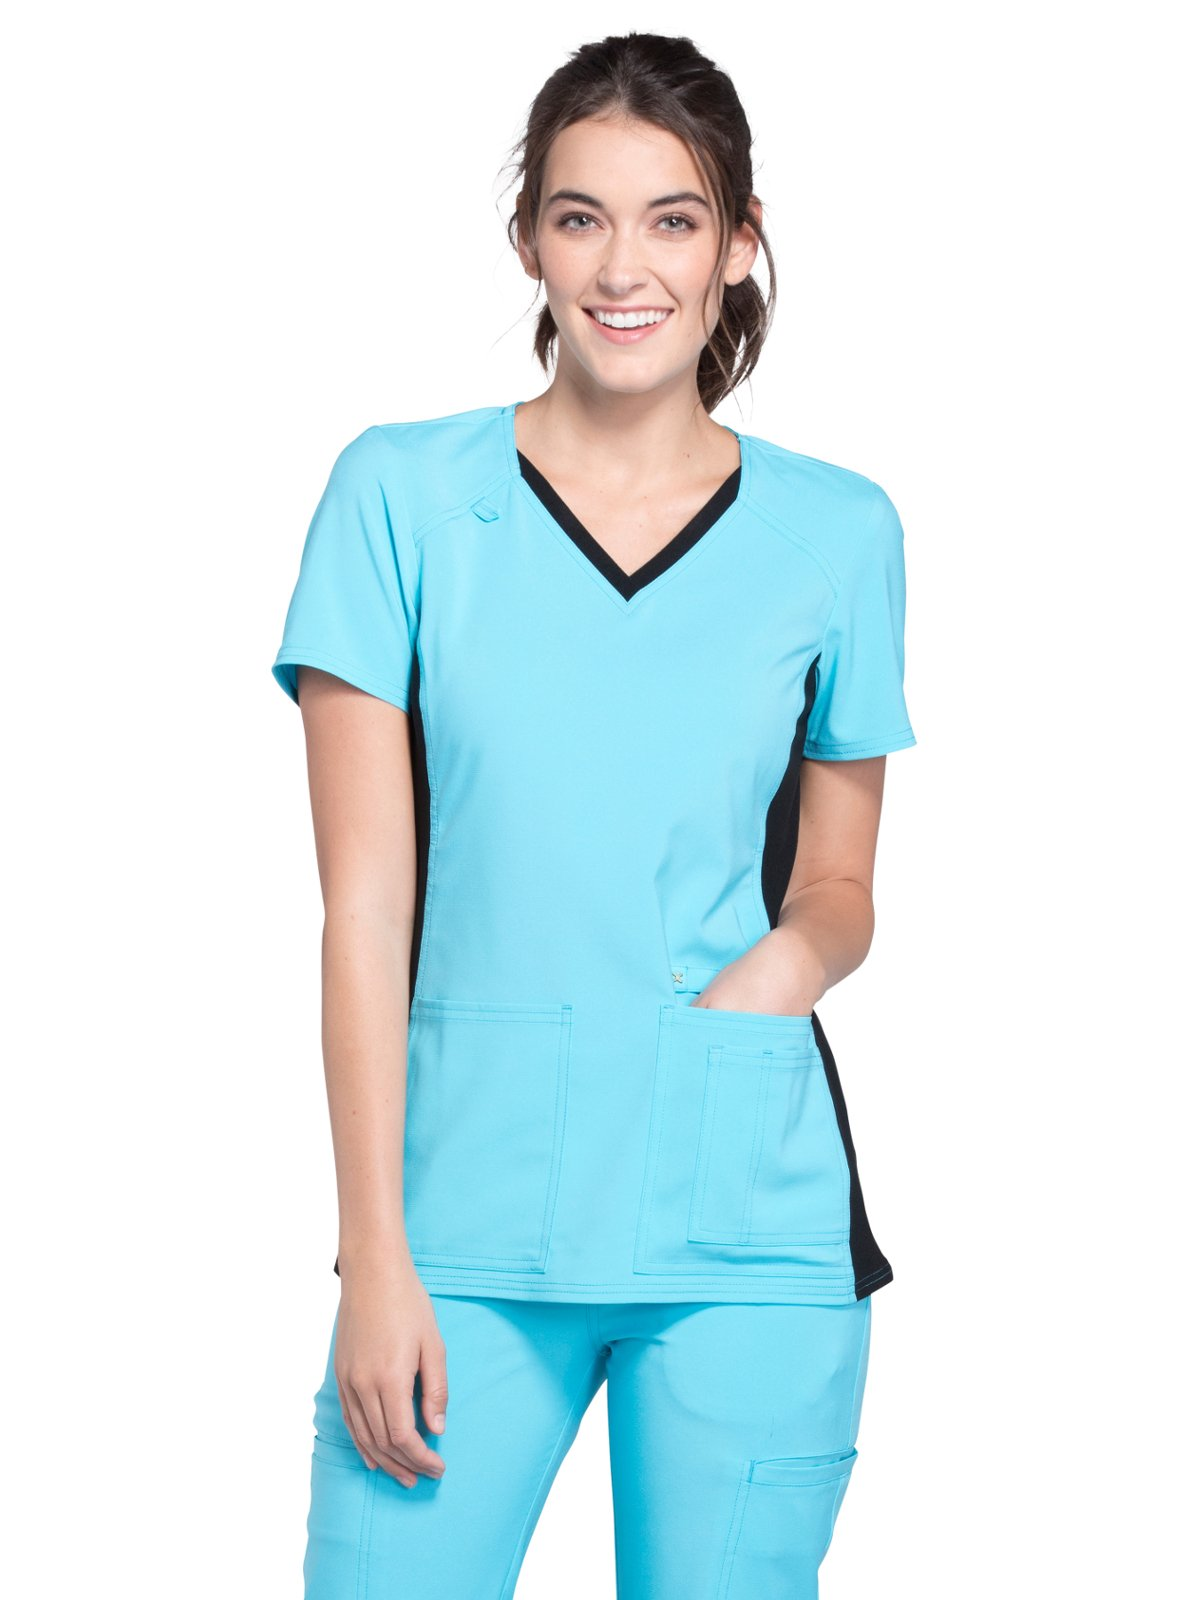 Cherokee Iflex Women's V-Neck Knit Panel Solid Scrub Top Large Turquoise with Black Contrast